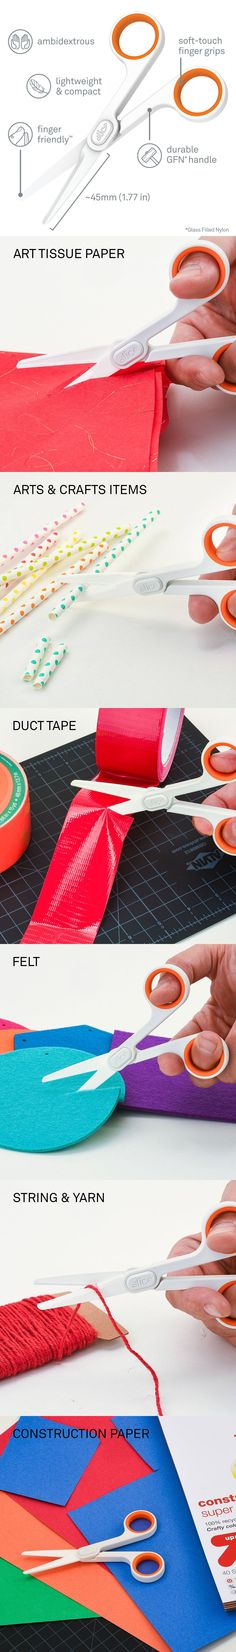 Find out how Slice Ceramic Scissors use our finger-friendly edge to cut materials effectively while keeping skin safe. Fun Crafts, Diy And Crafts, Arts And Crafts, Paper Crafts, Cut Paper, Paper Cutting, Paper Art, Small Scissors, Crafty Craft